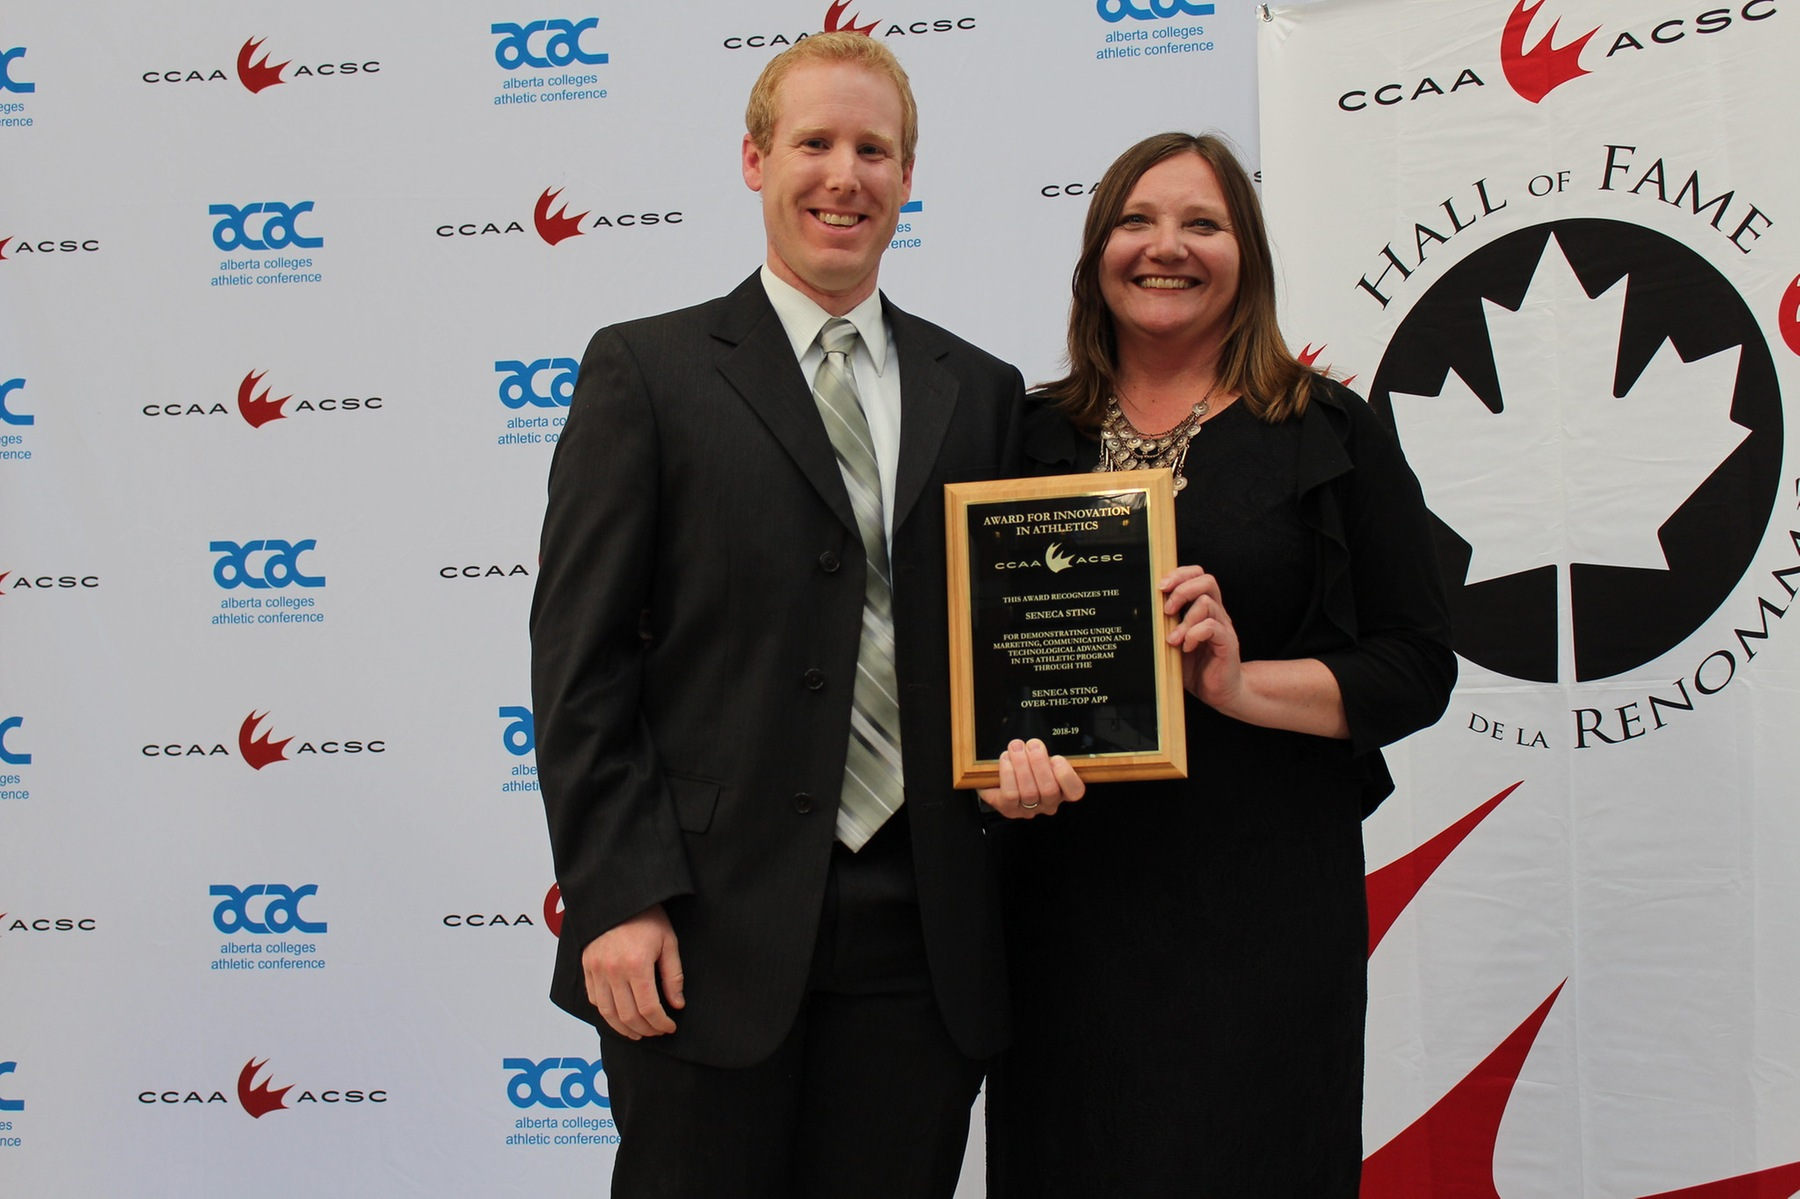 Sting earns first CCAA Innovation Award